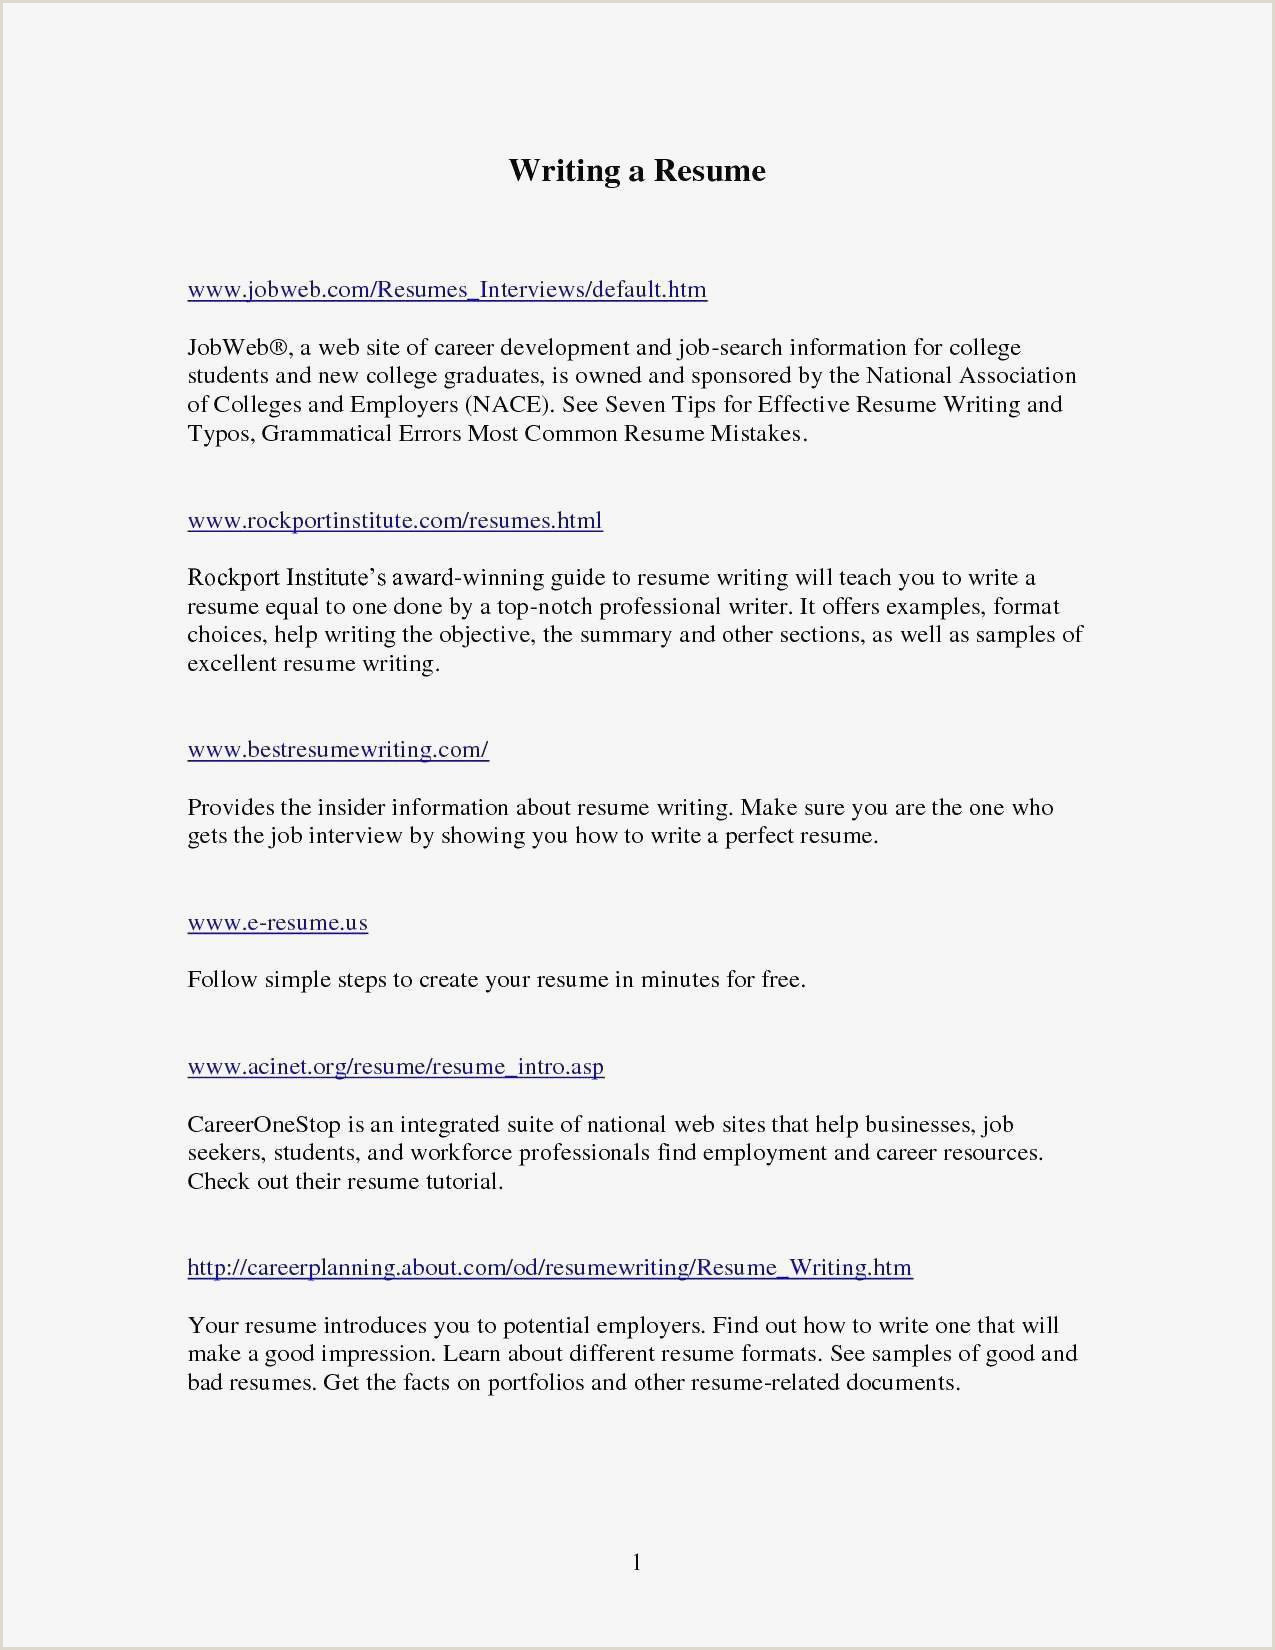 Professional Cv Examples for Teachers Site Pour Cv De Luxe Teaching English Abroad Resume Sample